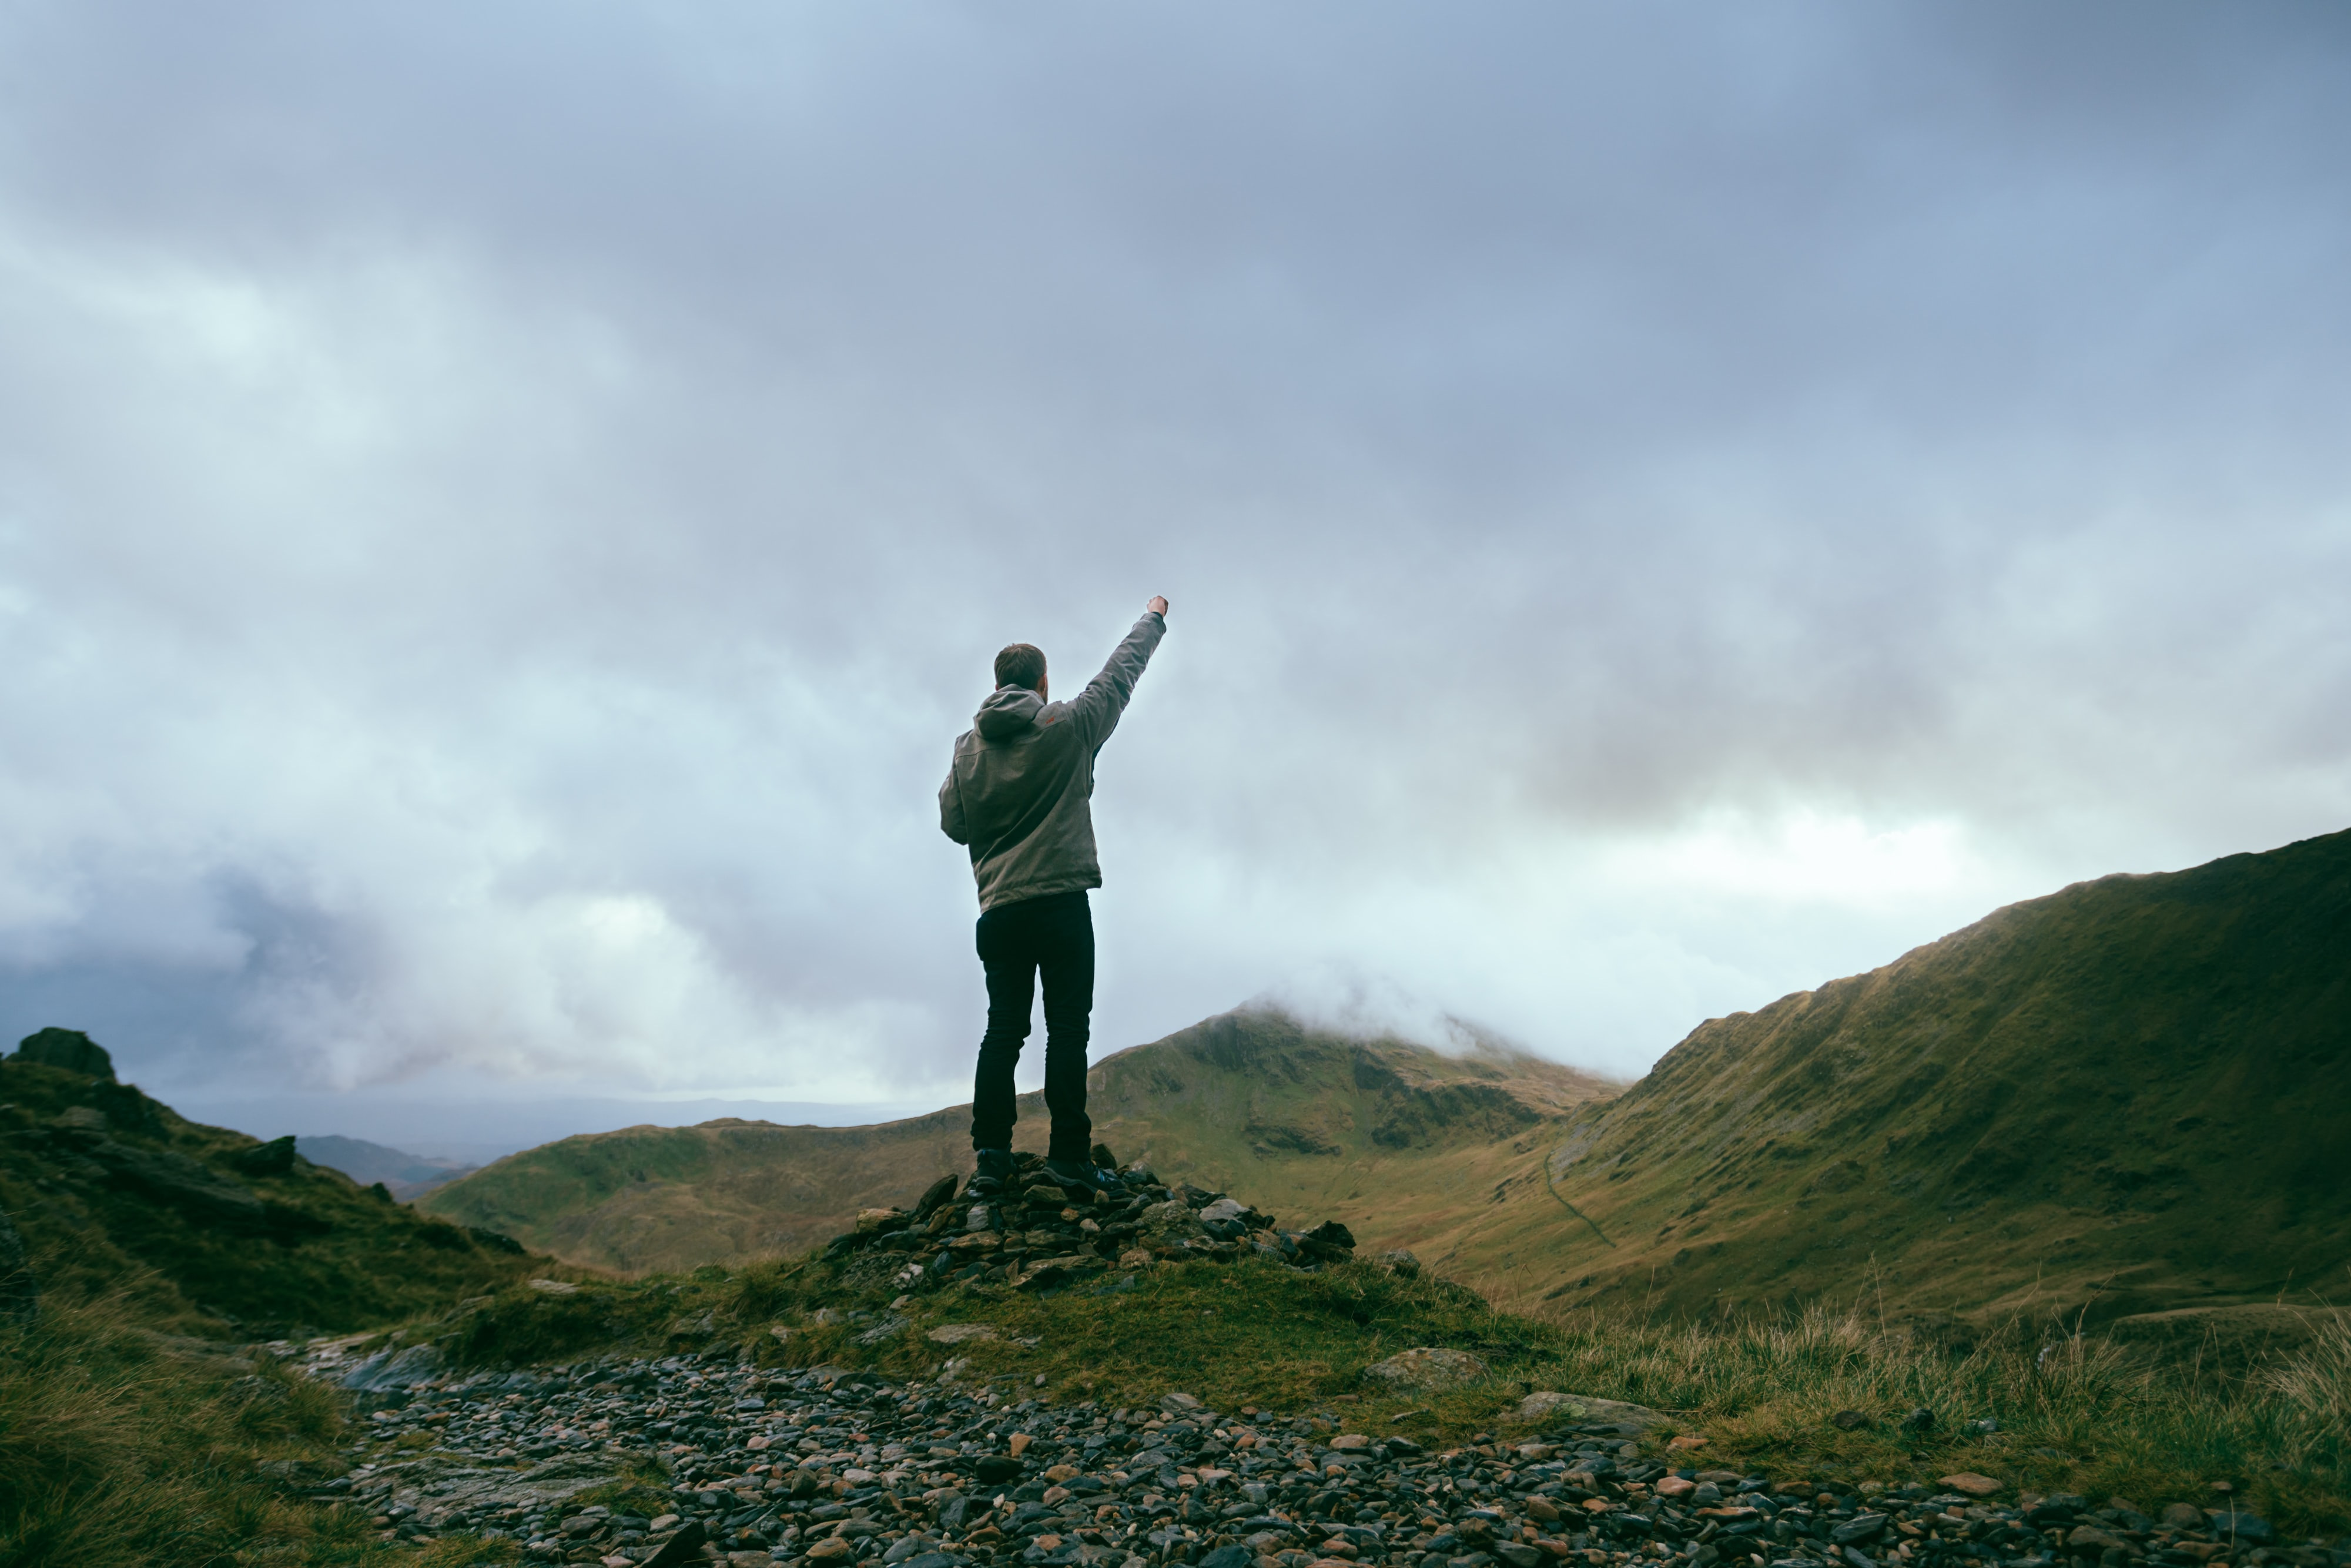 man standing on rocks near mountains pointing sky during daytime